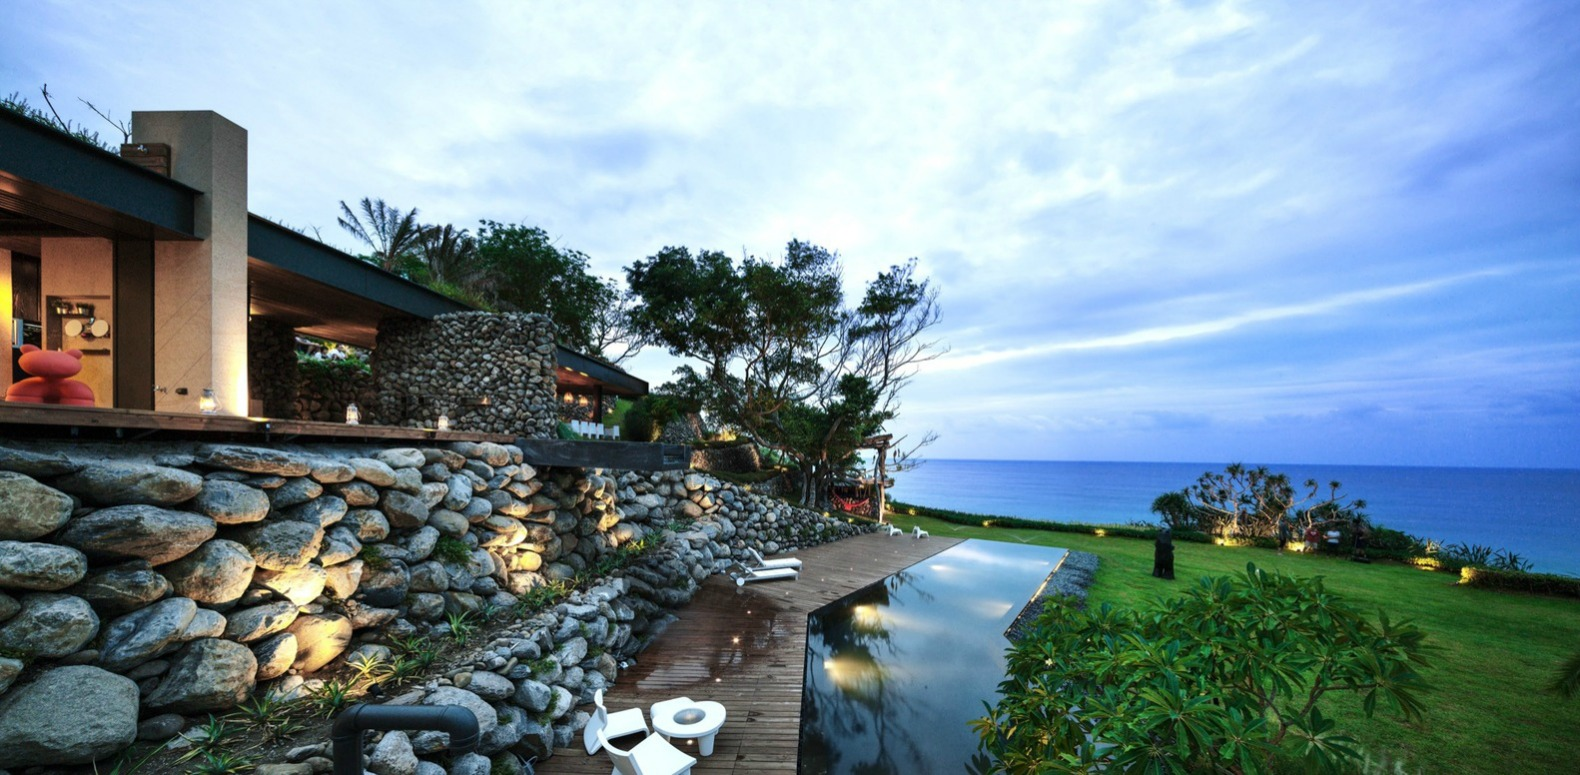 Create + Think Design Studio, Atolan House, Rock House, Taiwan Home, Rock